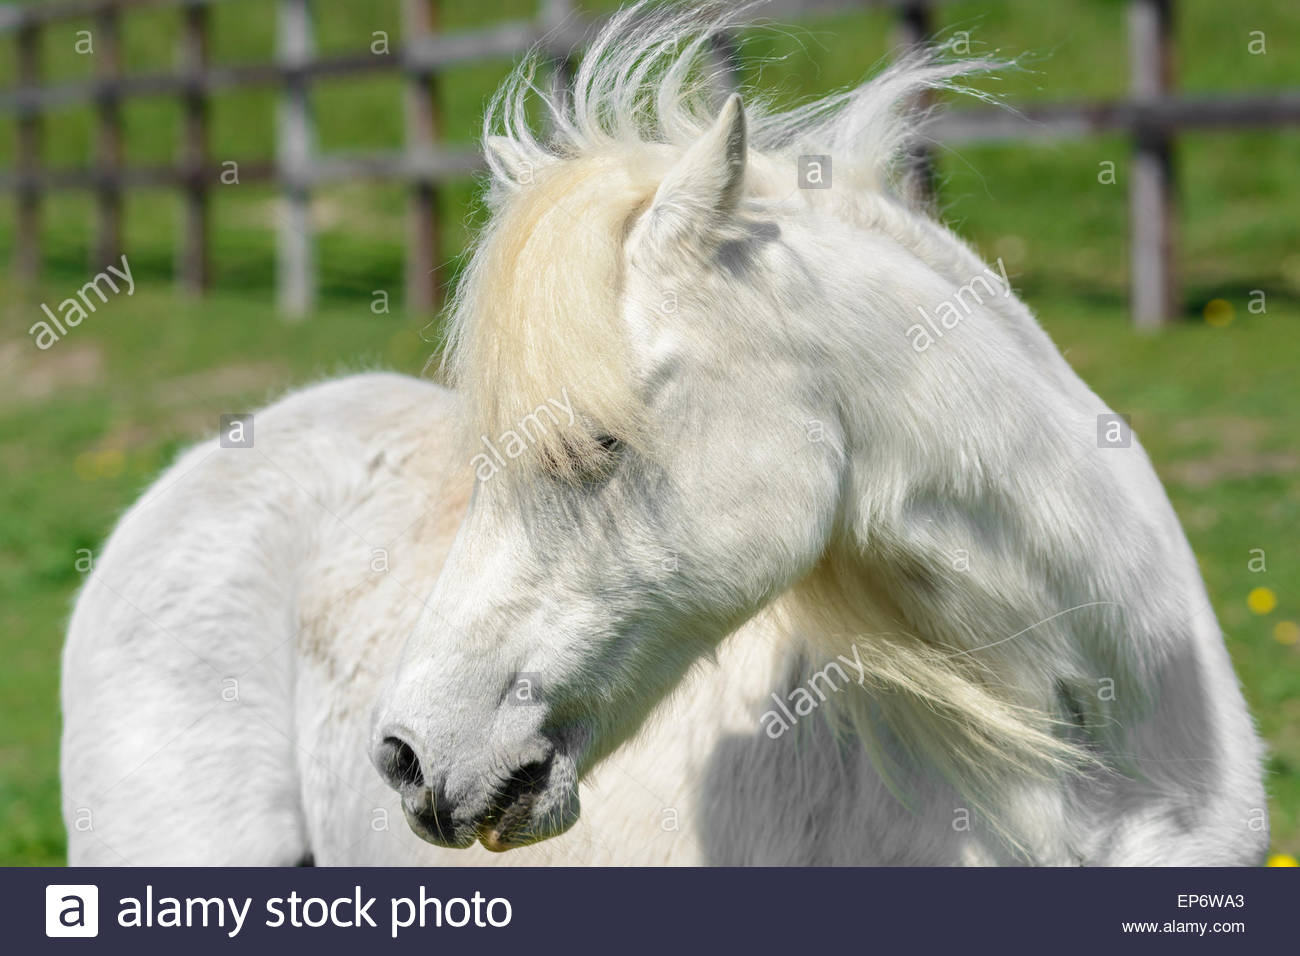 Domestic white pony in a field turning it's head to the side. - Stock Image